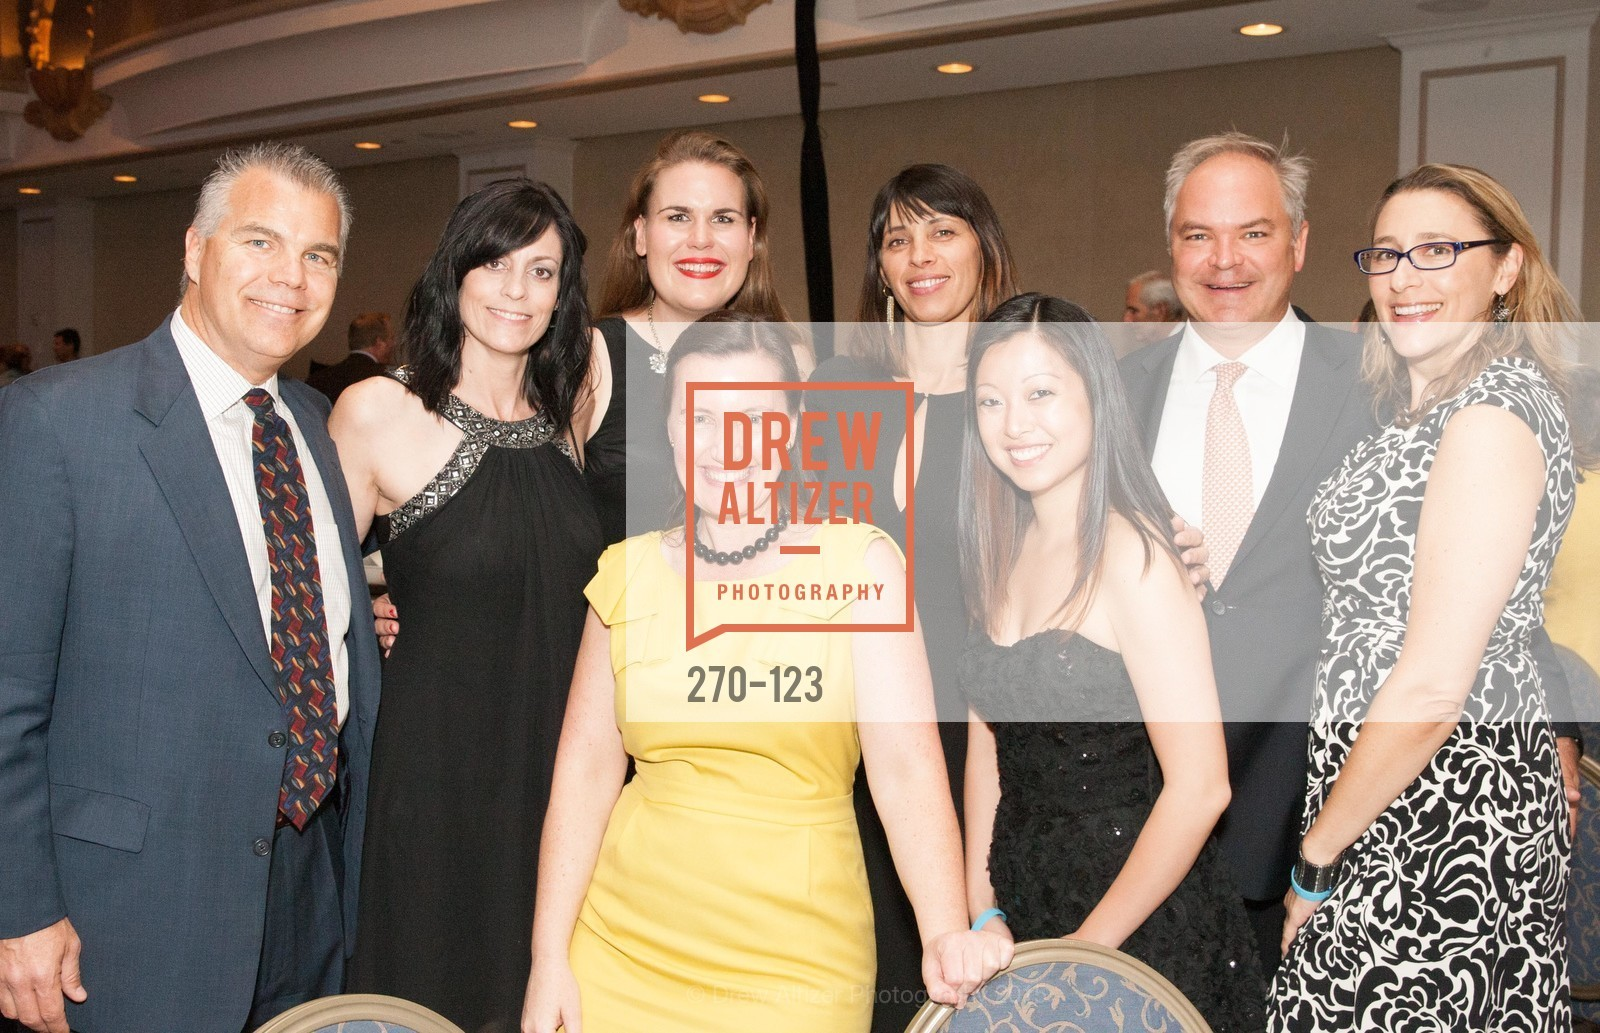 Rich Holman, Paula Holman, Angela Molano, Walker Bass, Heather Regan, 2015 Boys and Girls Club Annual Gala, The Fairmont San Francisco. 950 Mason St, May 20th, 2015,Drew Altizer, Drew Altizer Photography, full-service event agency, private events, San Francisco photographer, photographer California